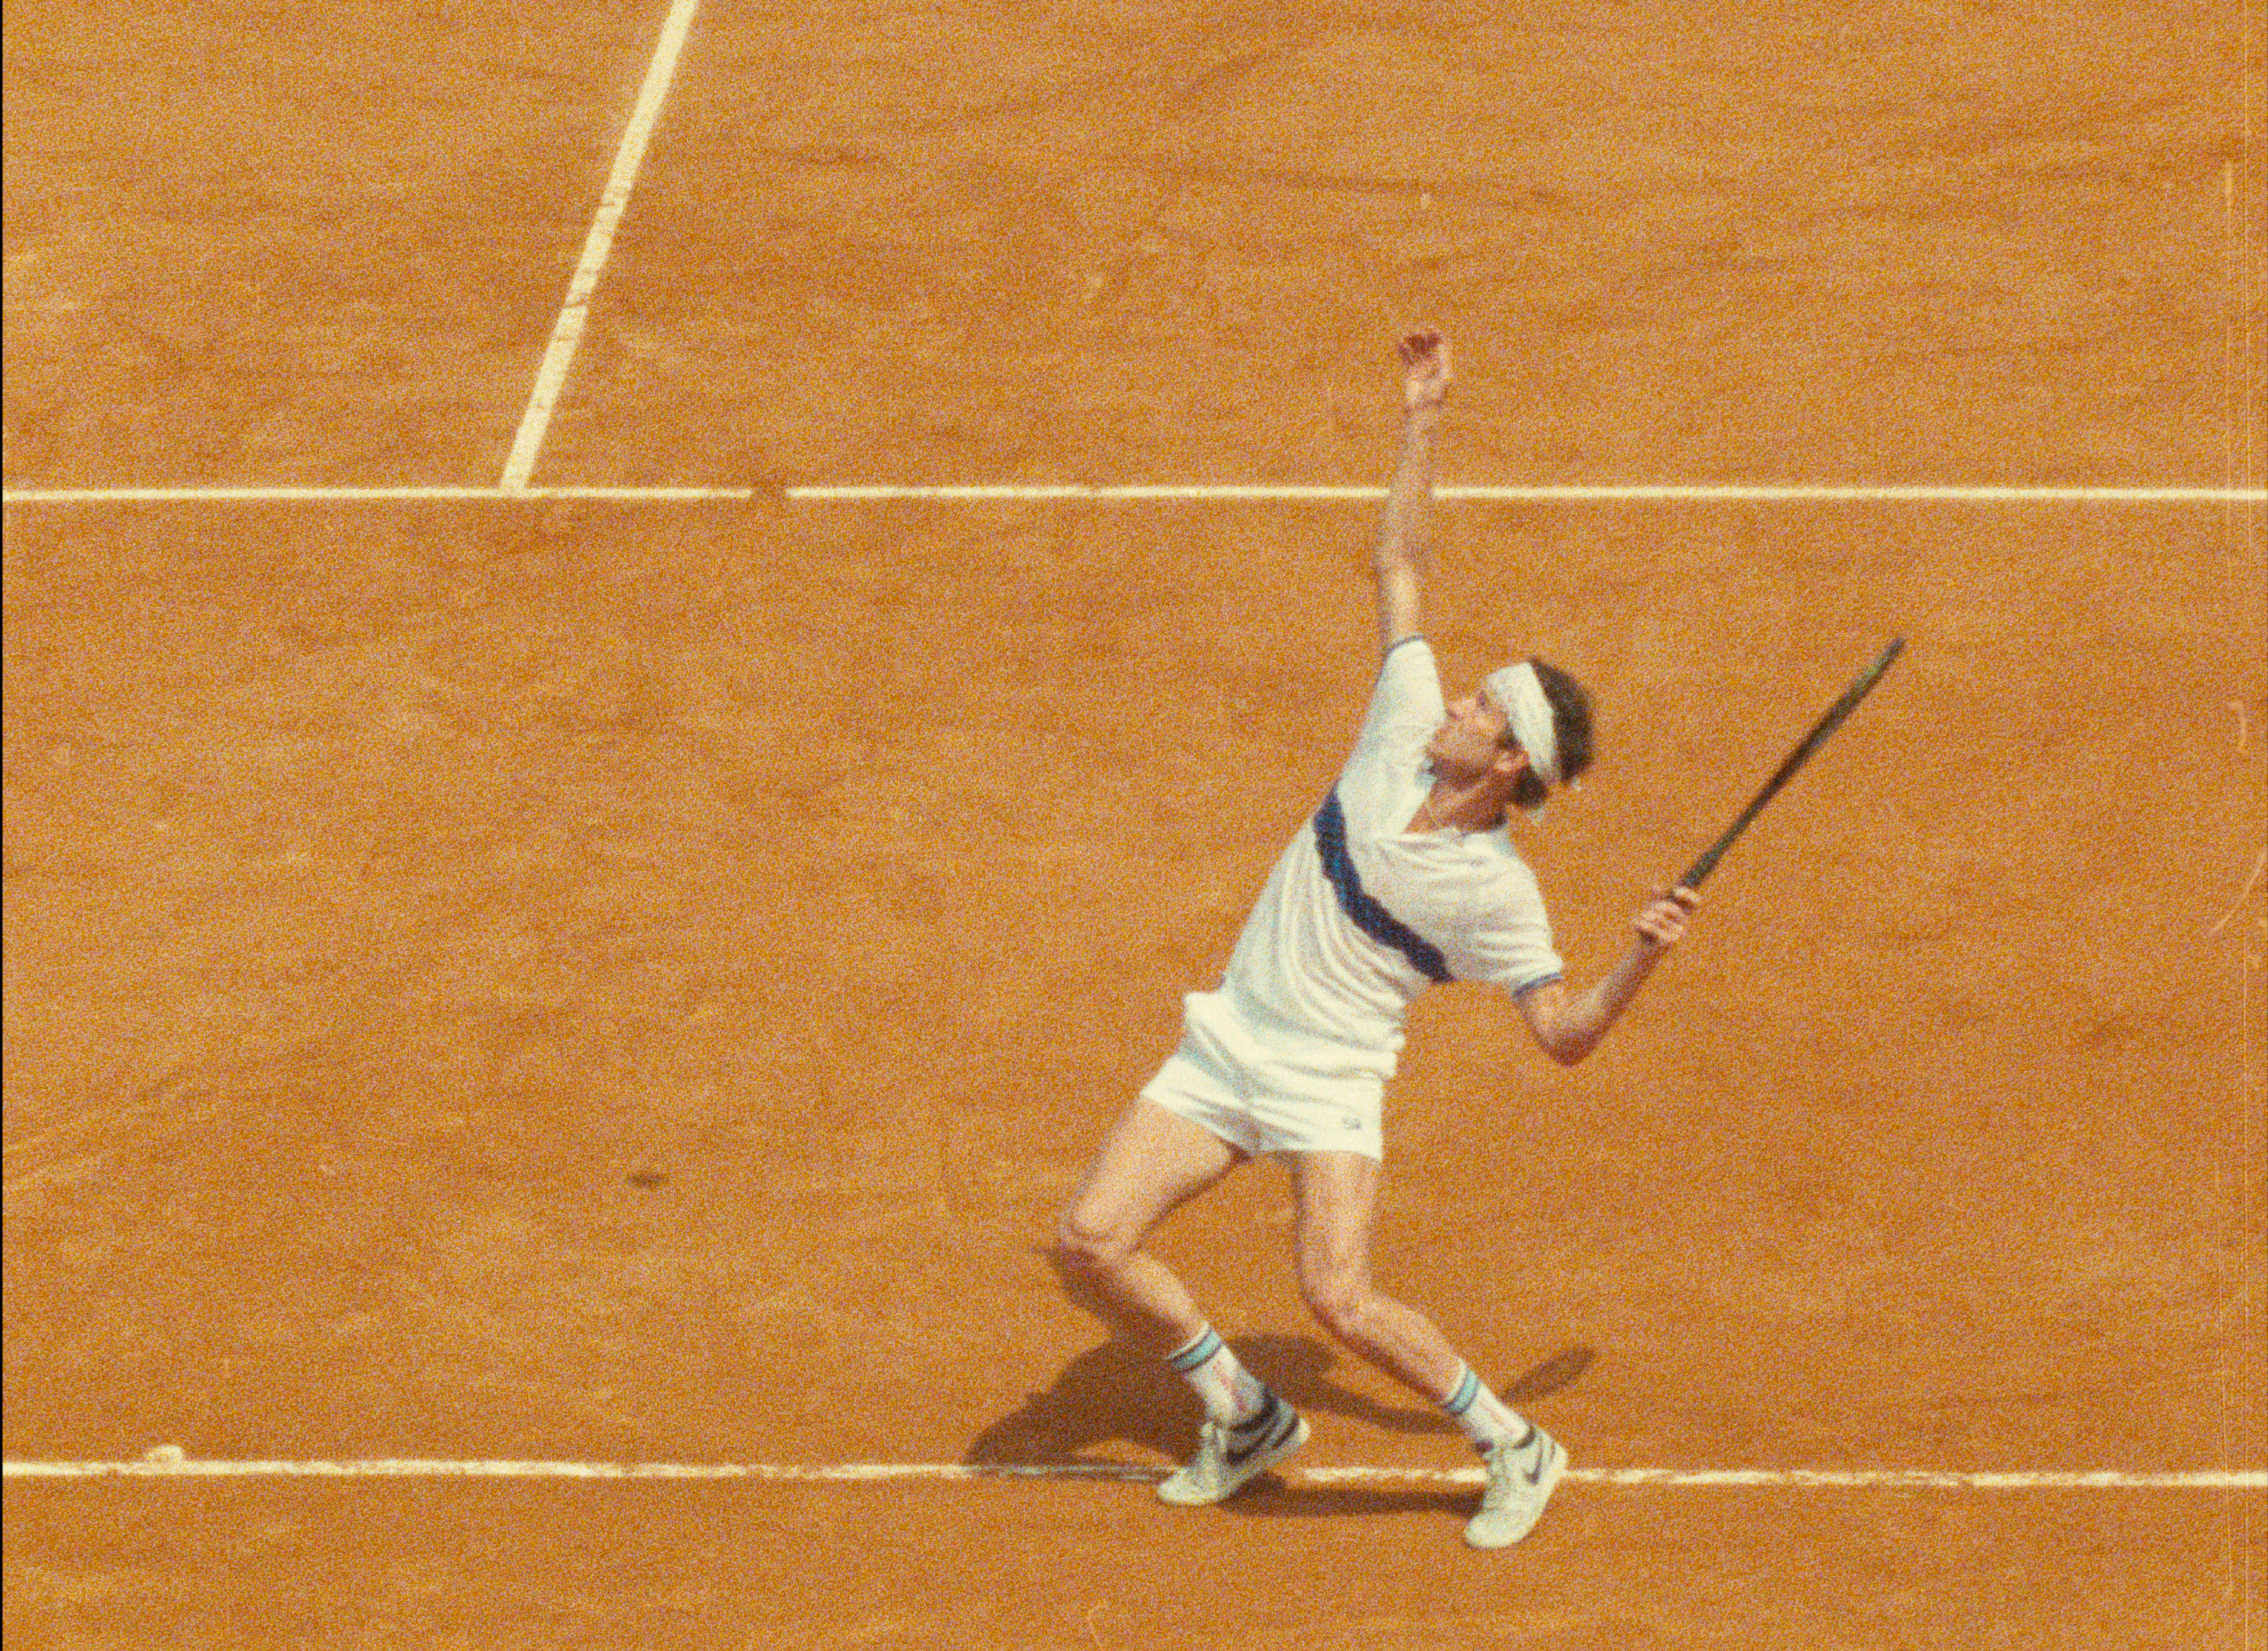 Julien Faraut : « McEnroe est un metteur en scène hypersensible » (L'empire de la perfection)